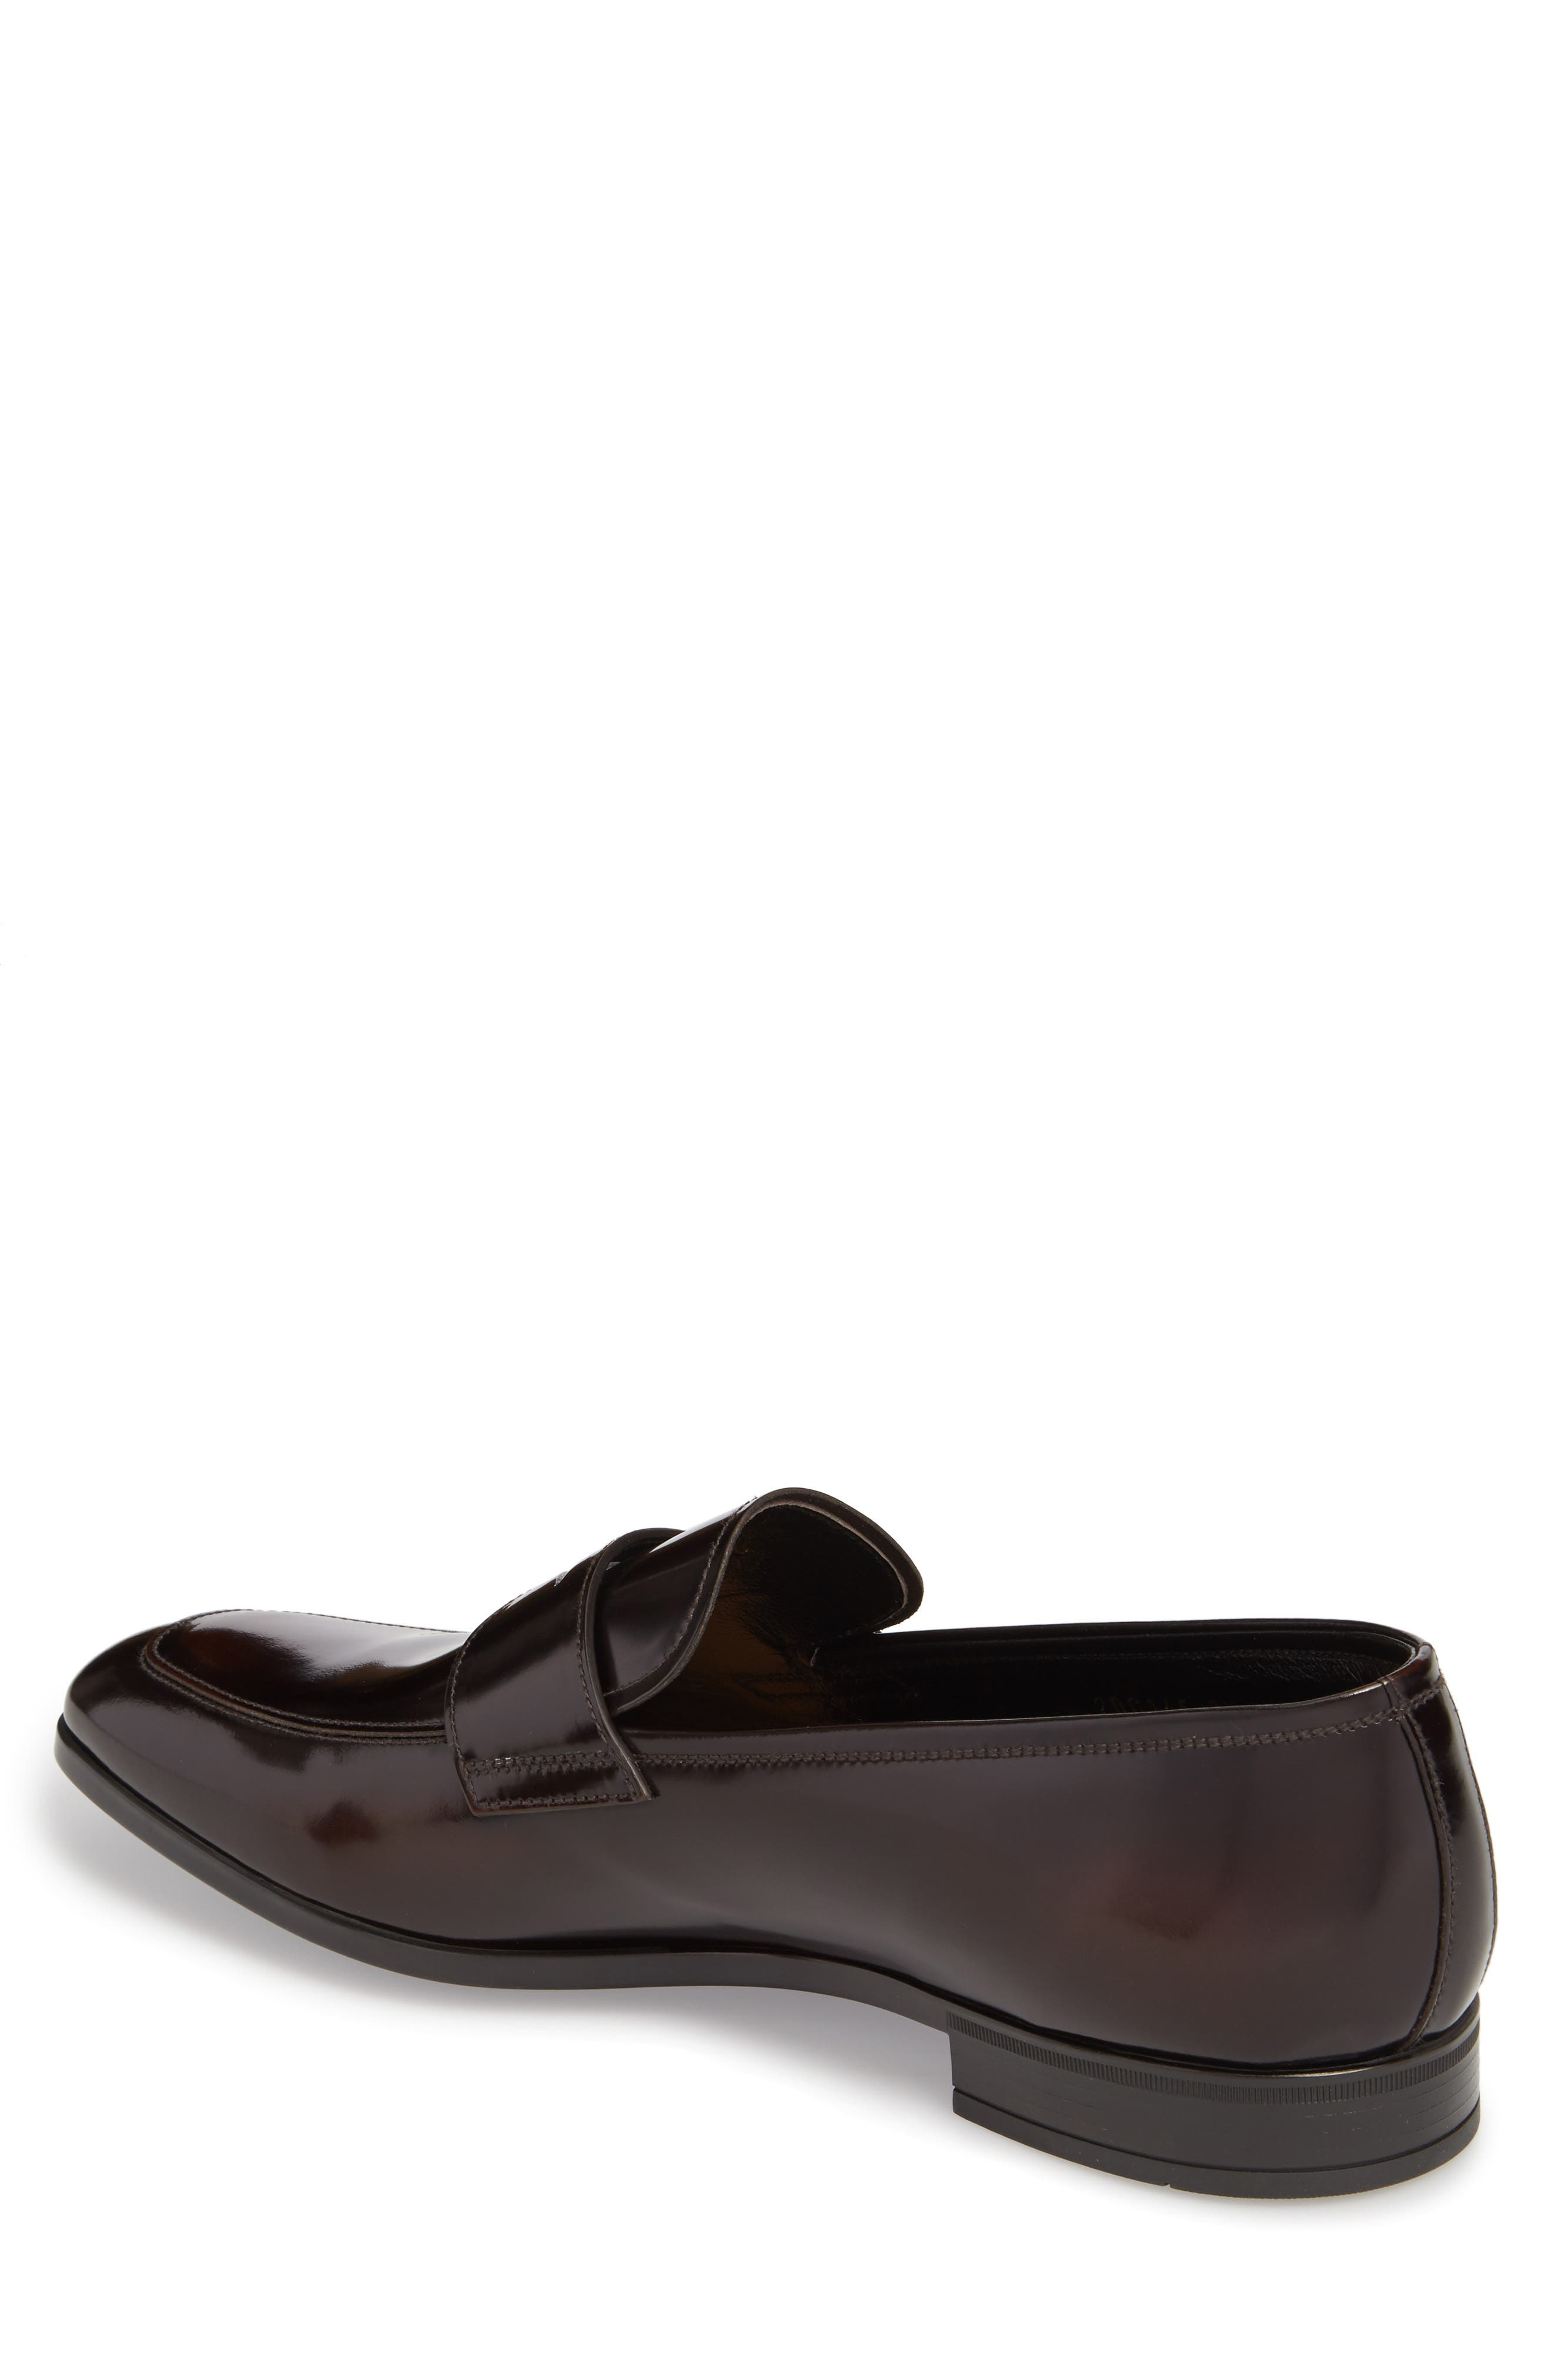 Alternate Image 2  - Prada Penny Loafer (Men)